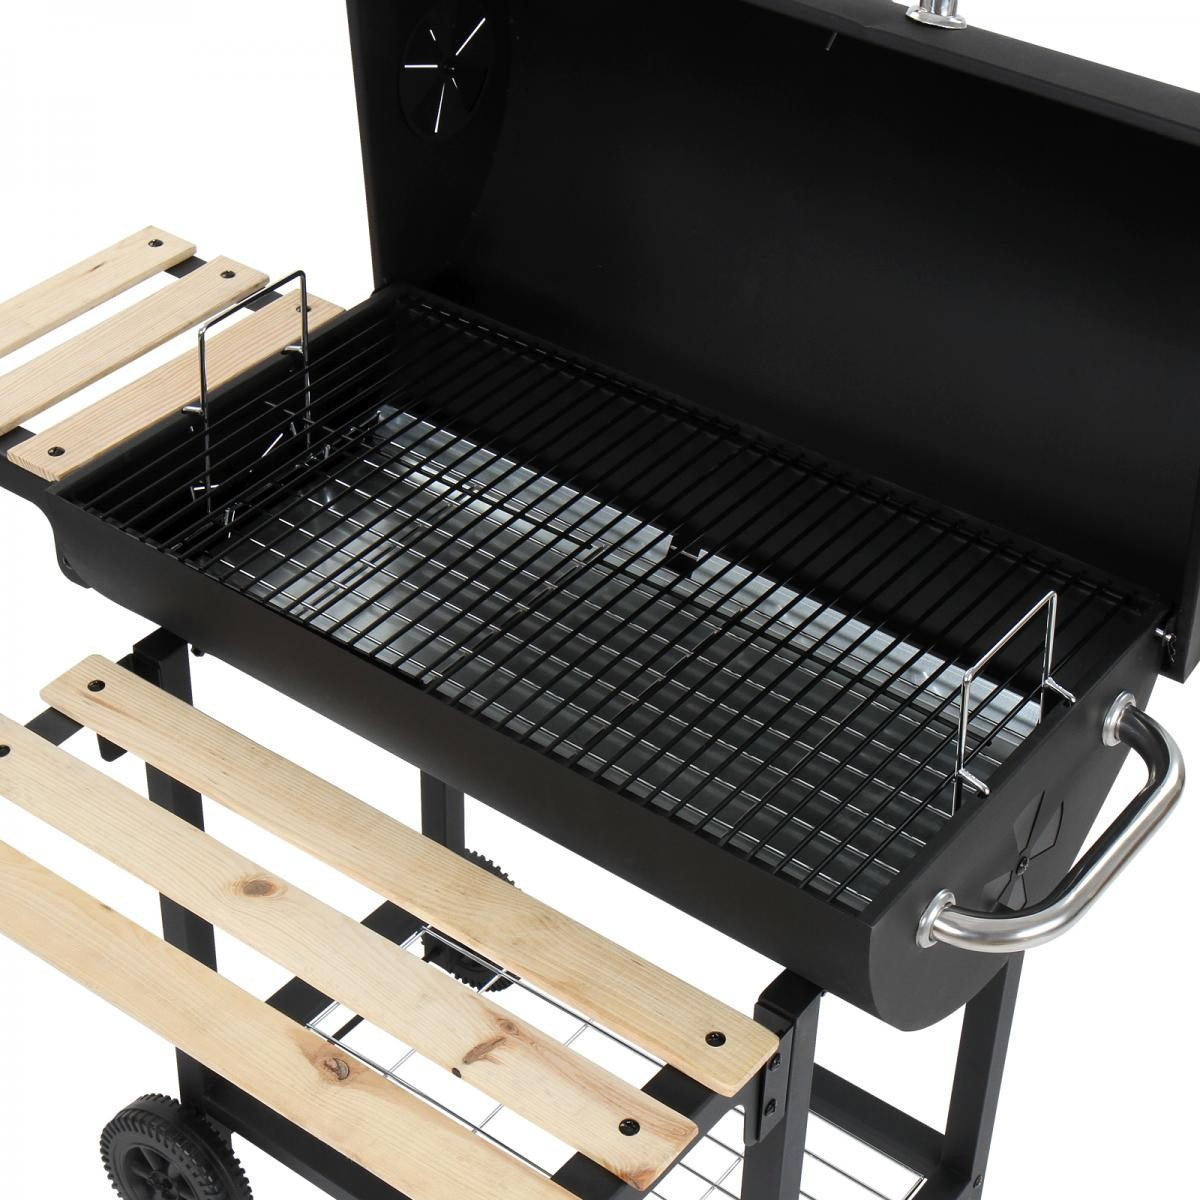 broil master bbq grillwagen holzkohle smoker grillrost. Black Bedroom Furniture Sets. Home Design Ideas